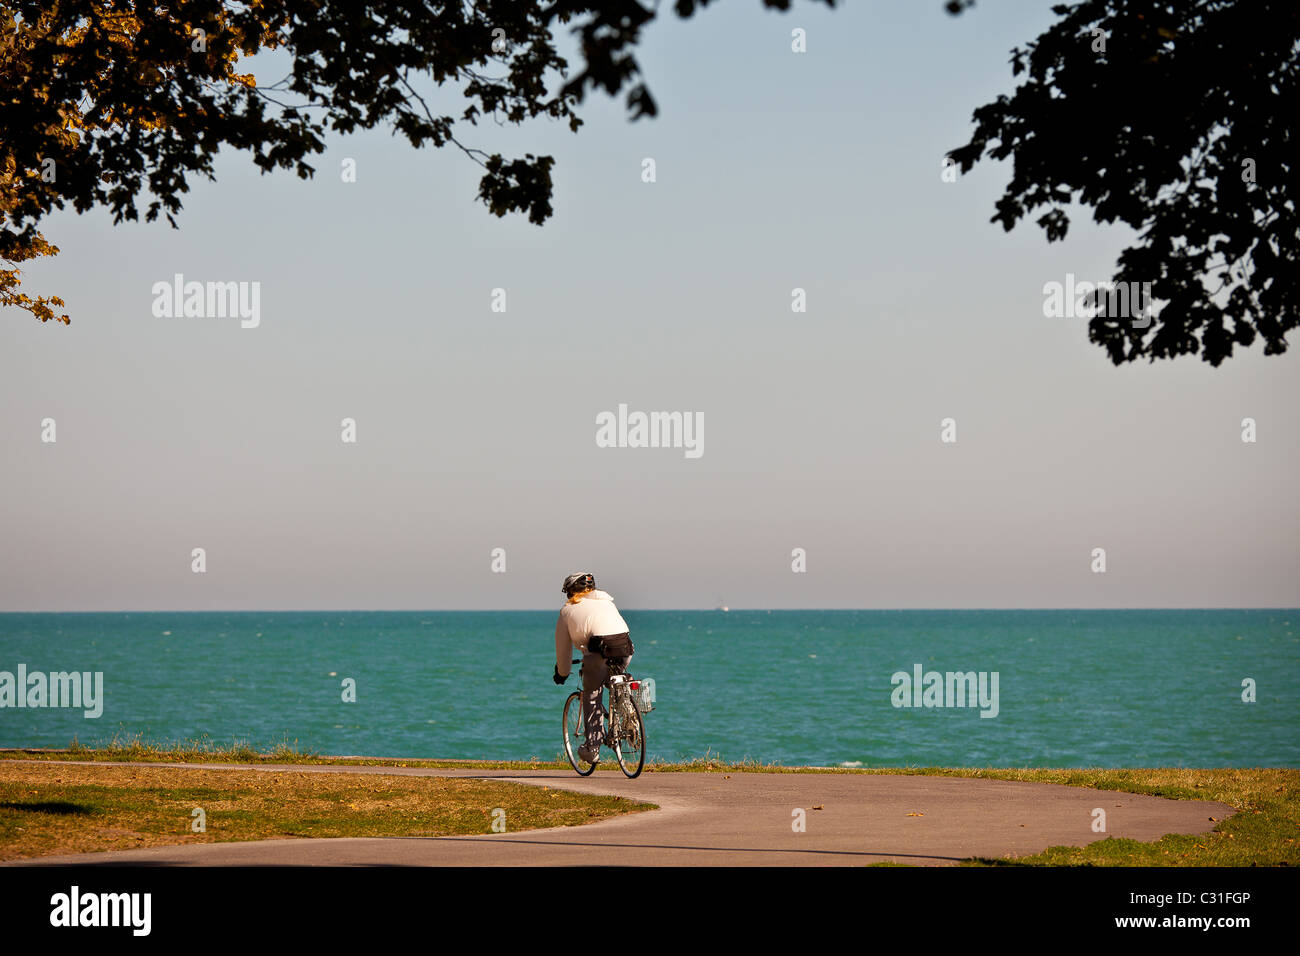 A bicyclist rides along Lake Michigan in downtown Chicago, IL. - Stock Image